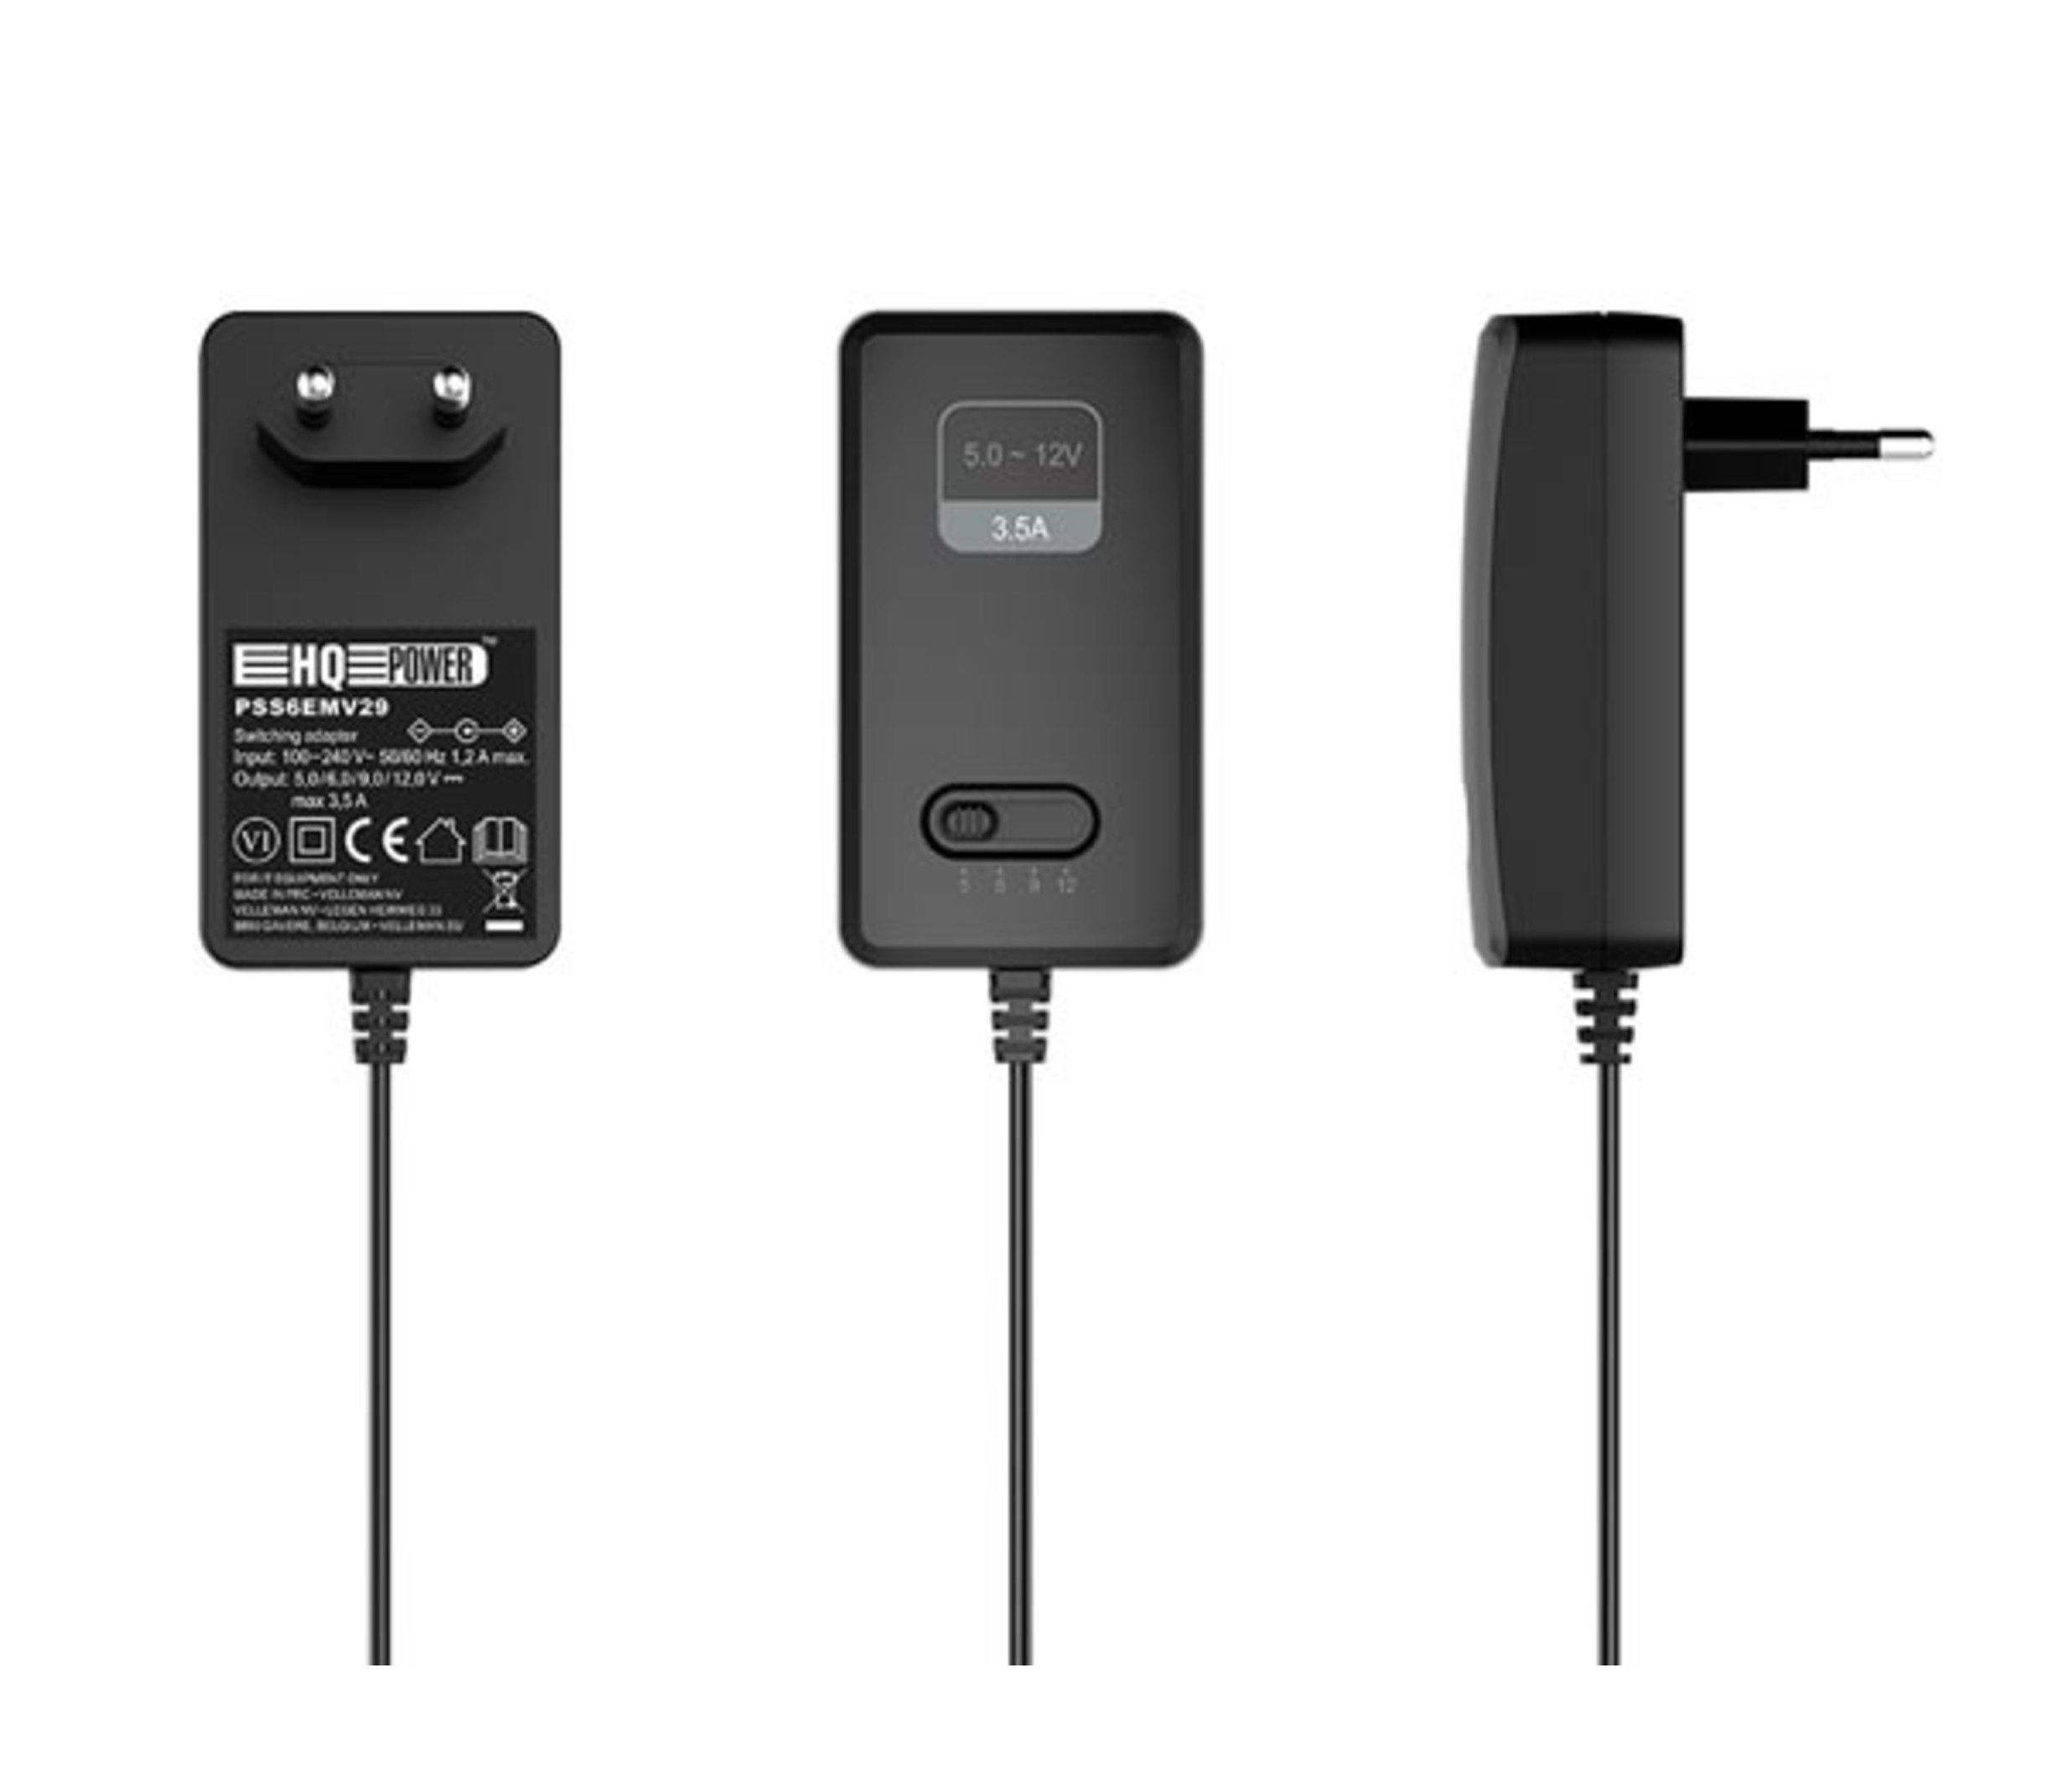 Instelbare voeding 5 tot 12 V dc - 42 W - 3.5 A max.